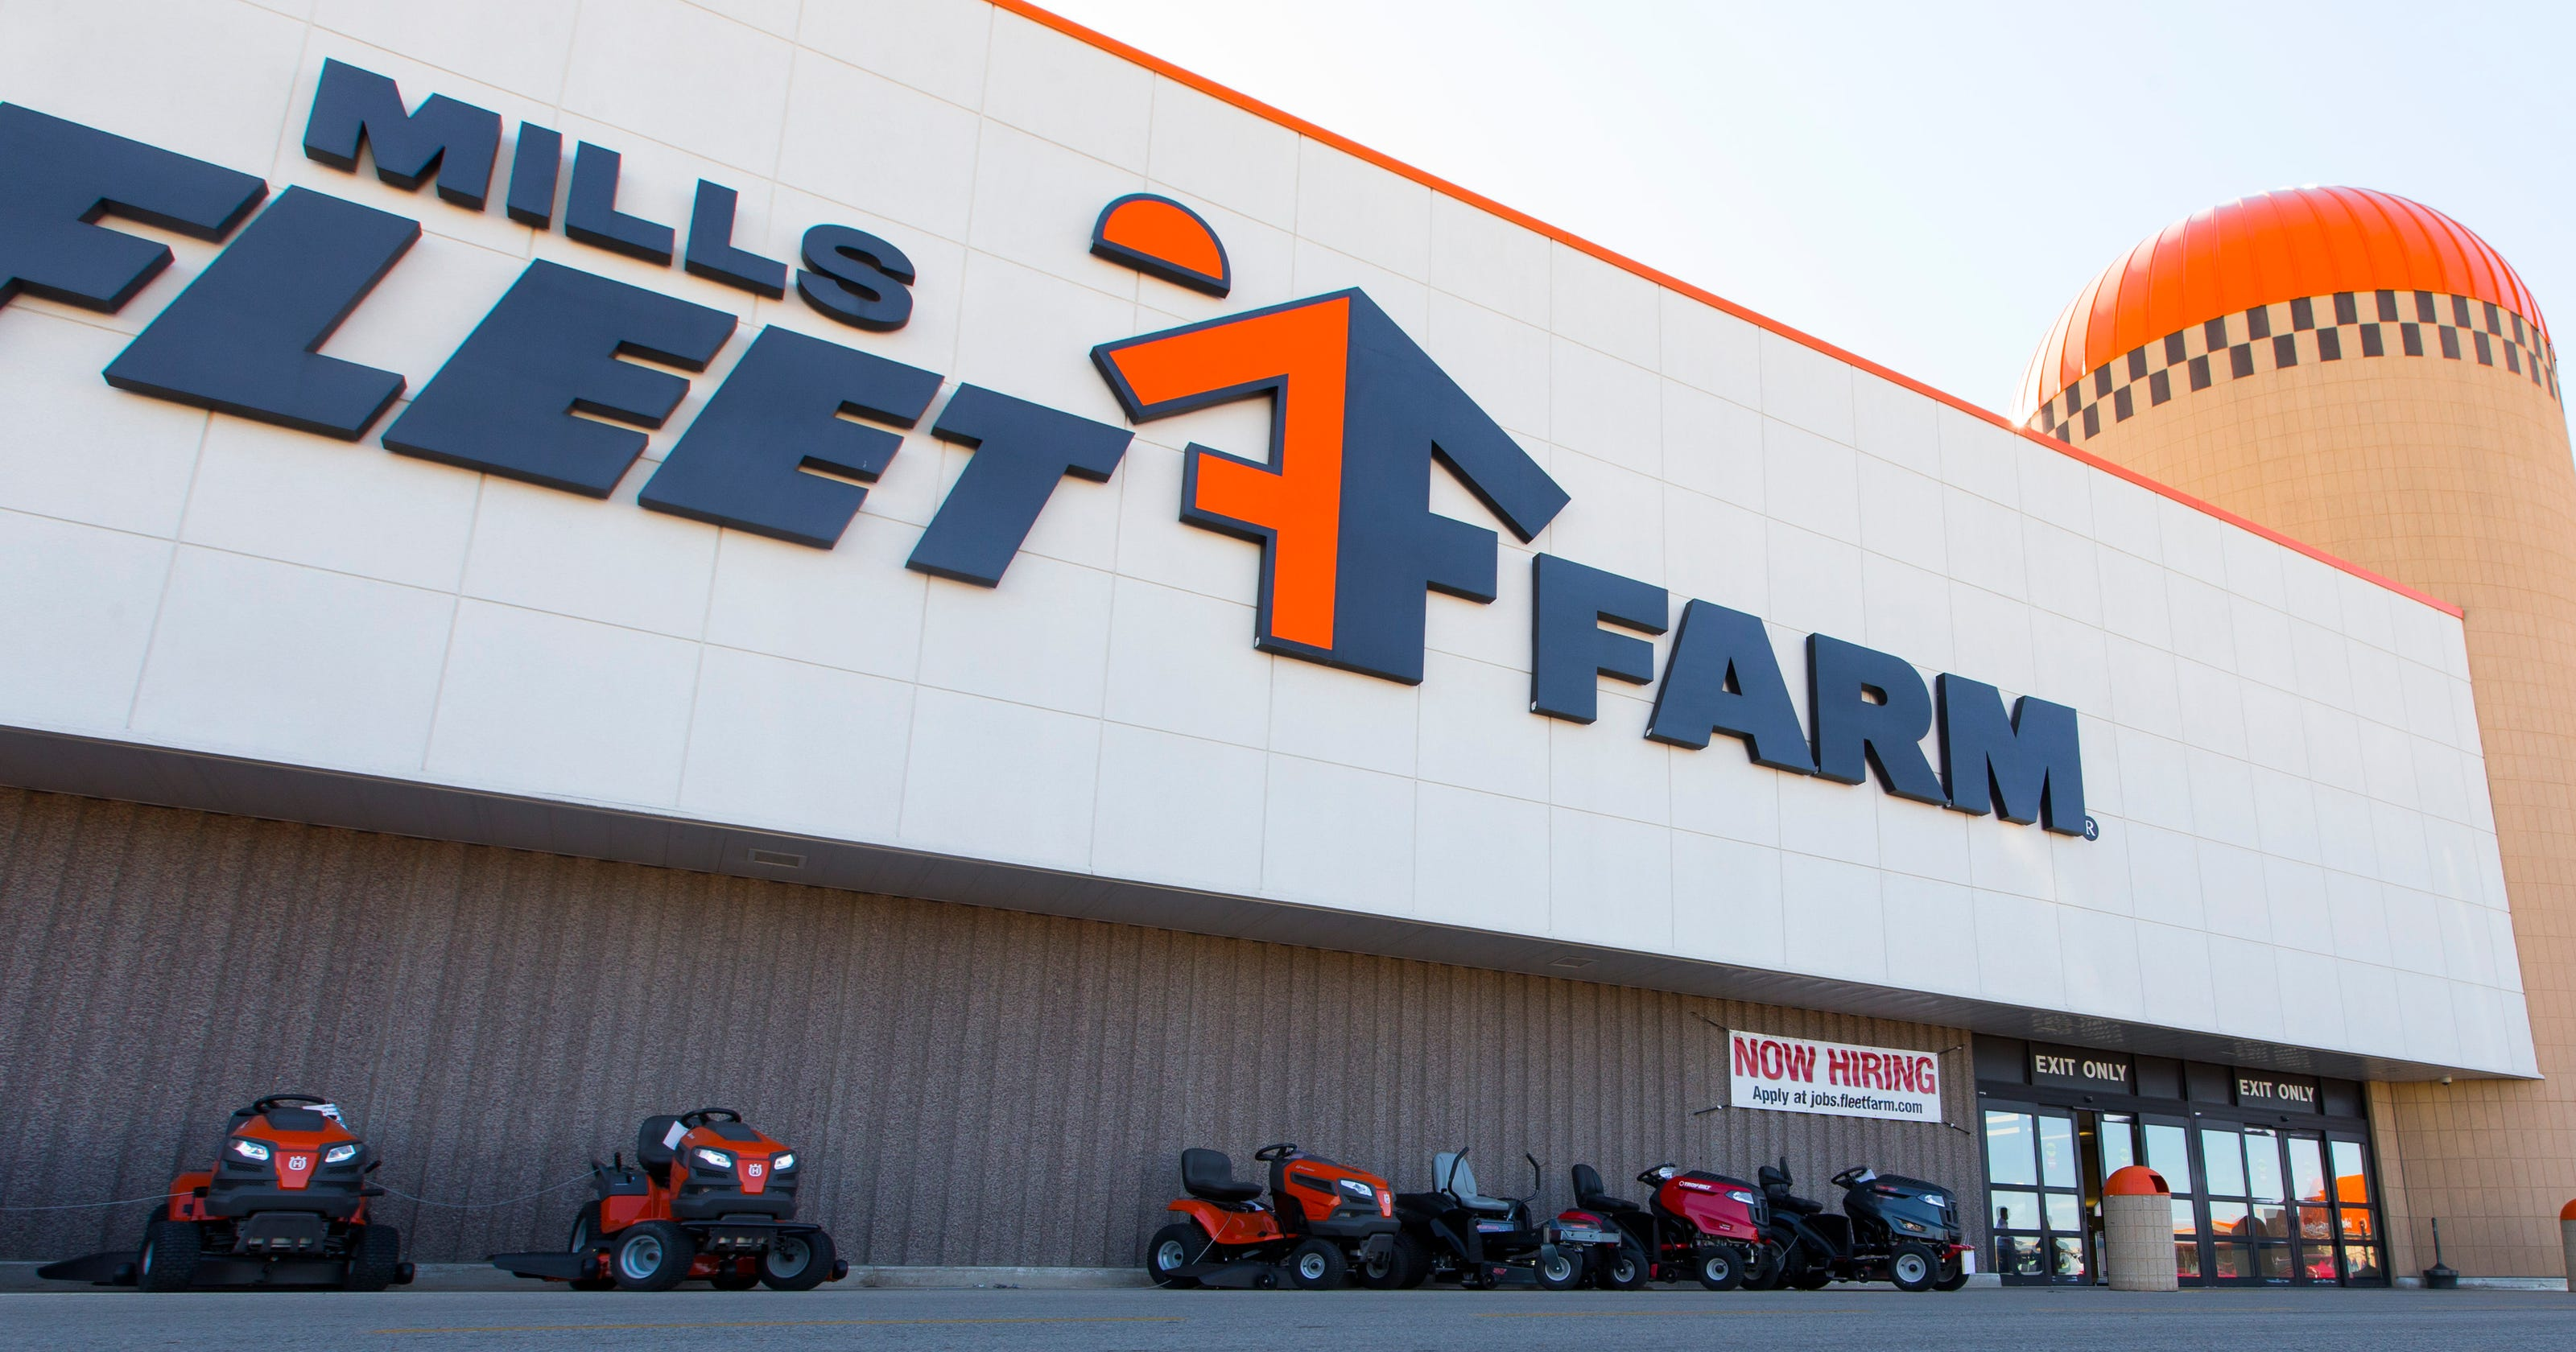 Mills Fleet Farm hopes to double in size in 6 years